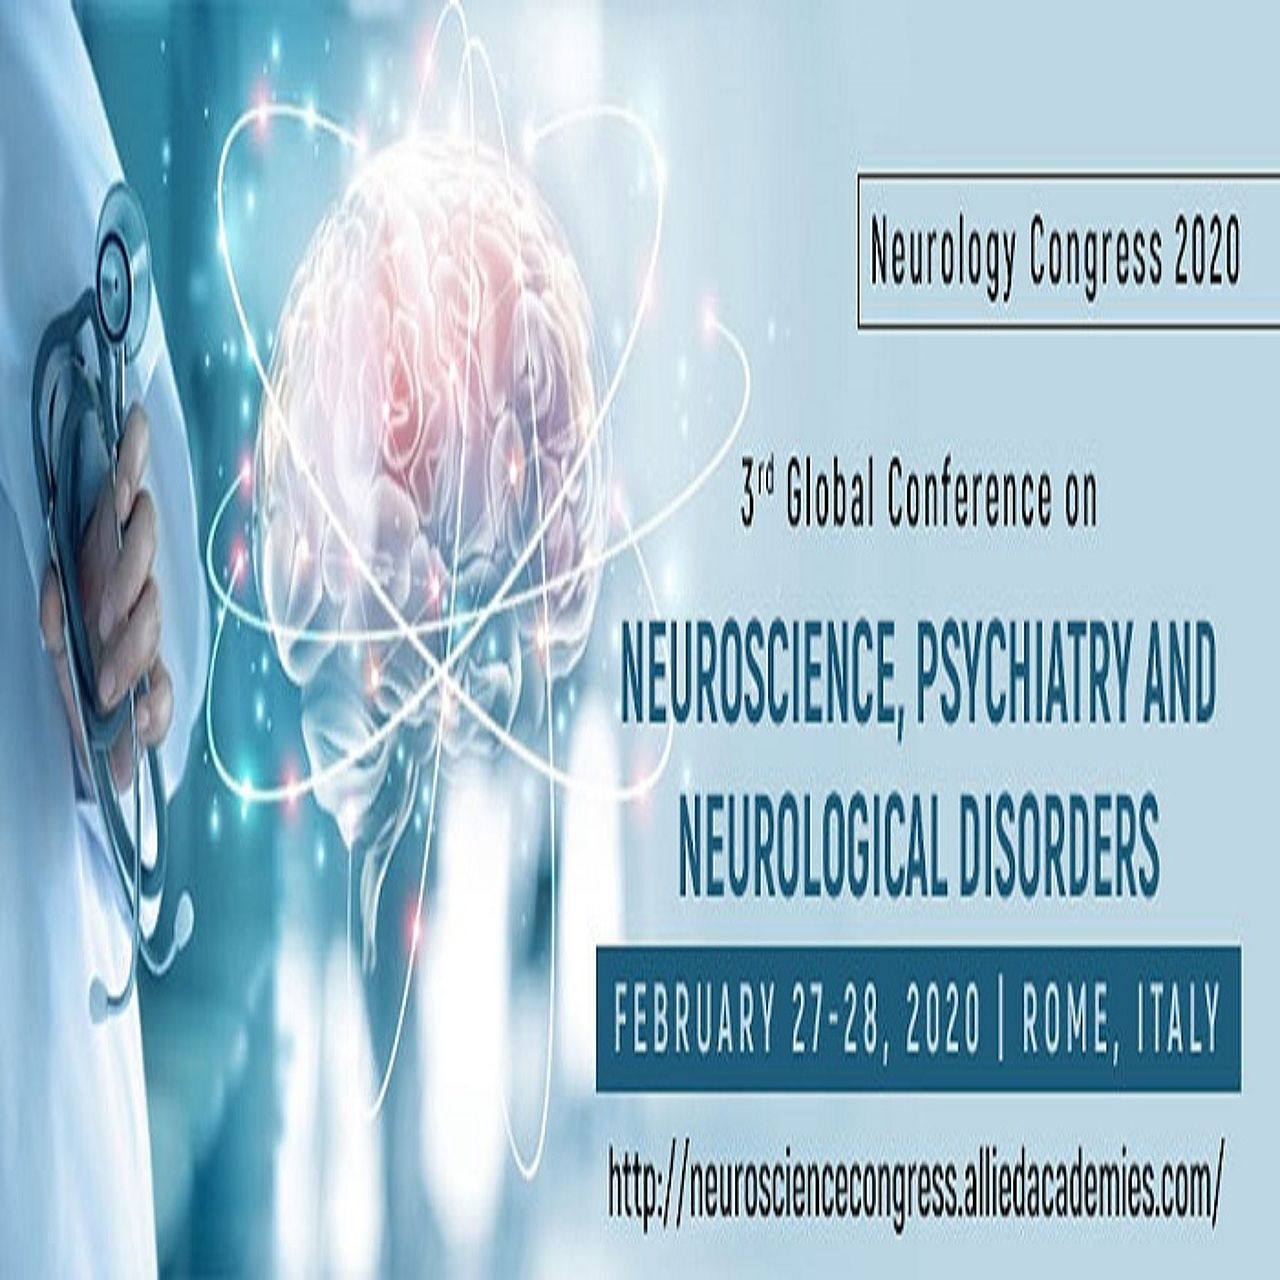 3rd Global Conference on Neuroscience, Psychiatry and